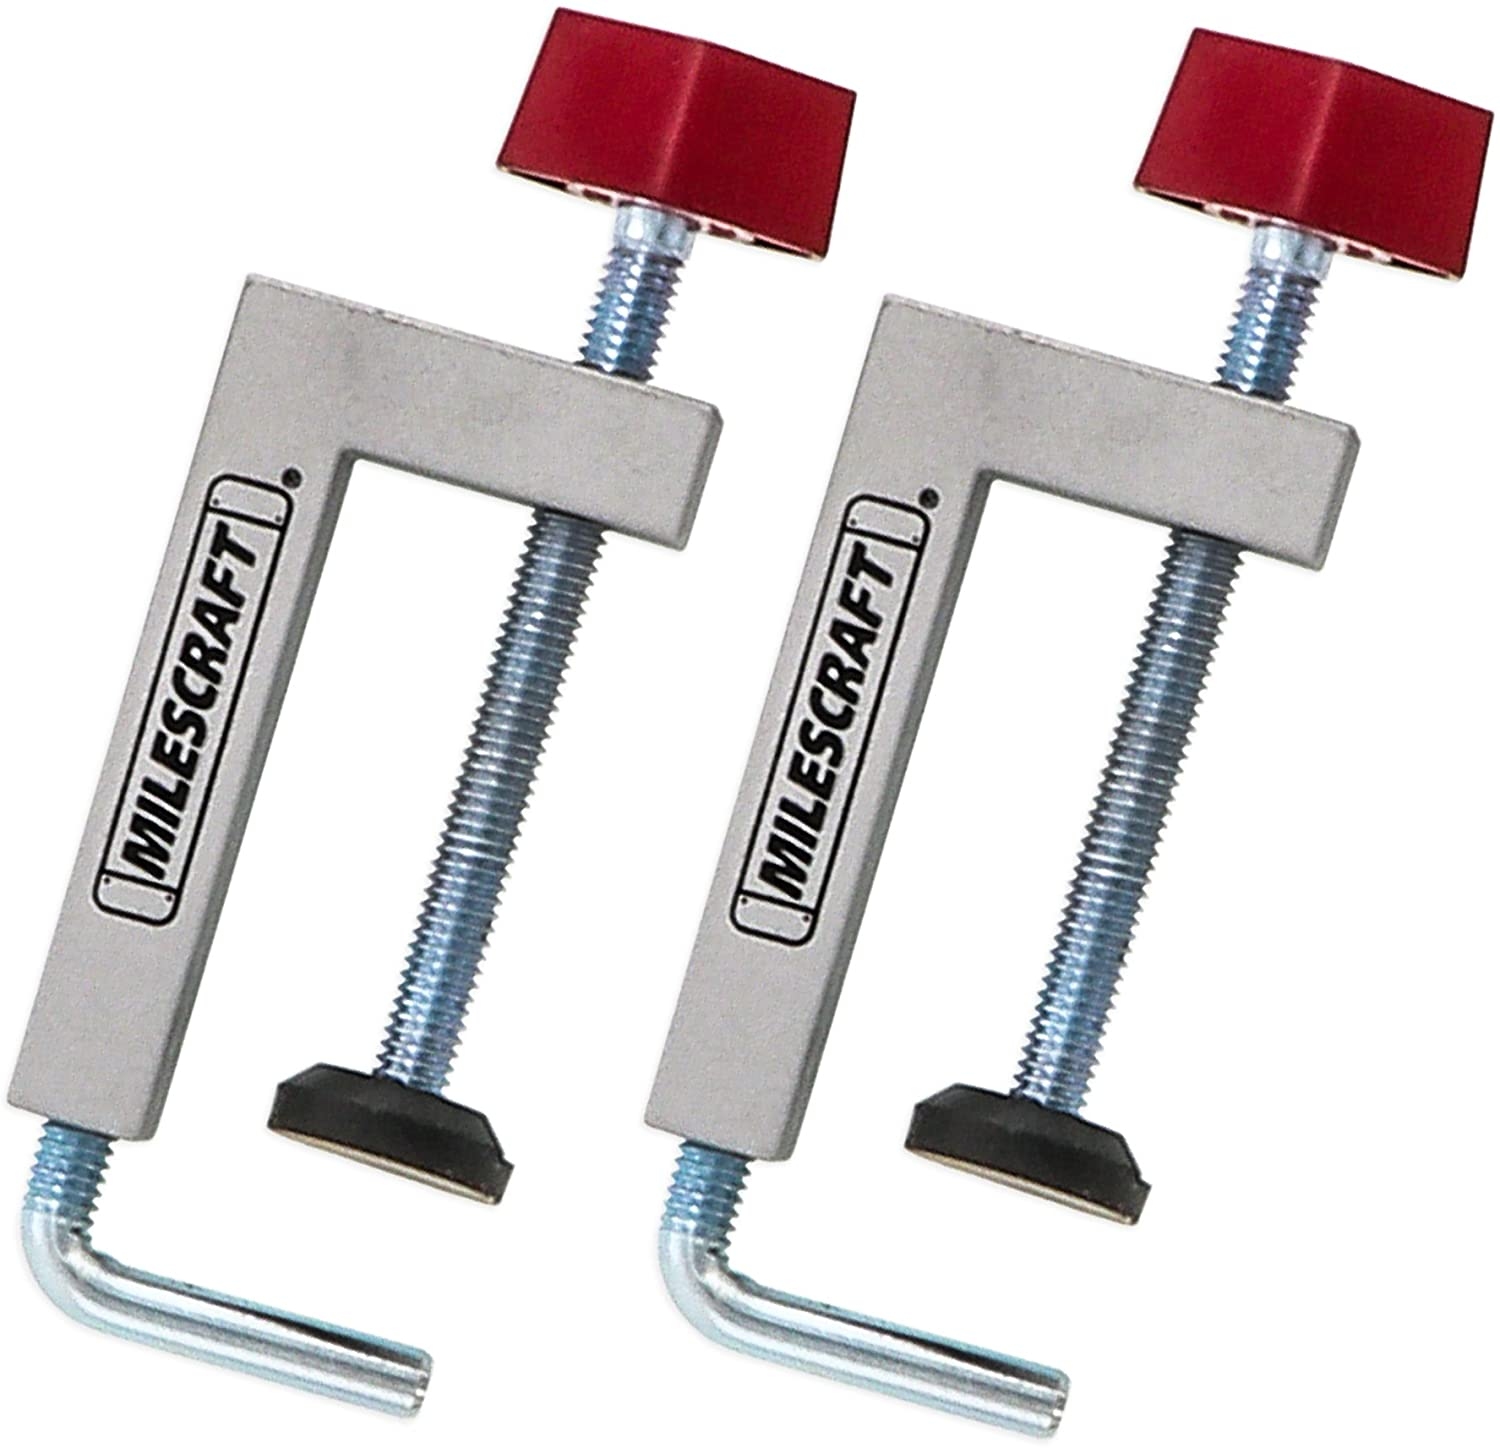 milescraft 4009 fence clamps in silver color